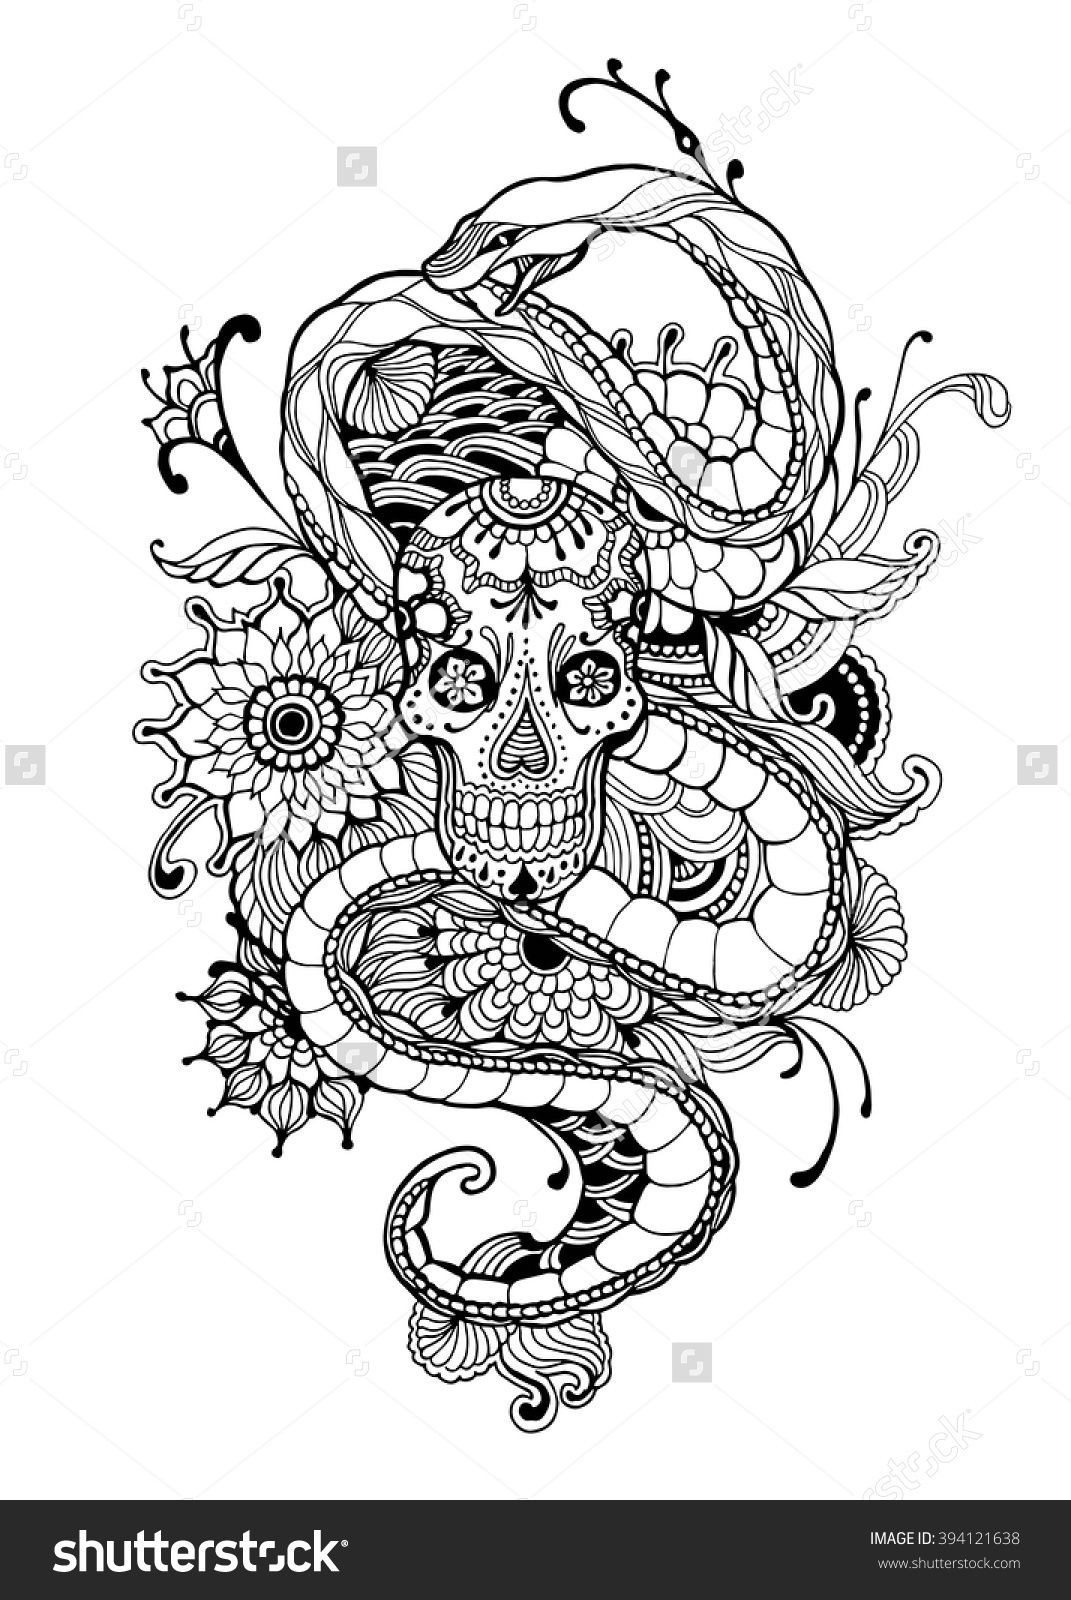 Best ideas about Snake Coloring Pages For Adults . Save or Pin Skull And Snake Adult Coloring Page Vector Illustration Now.